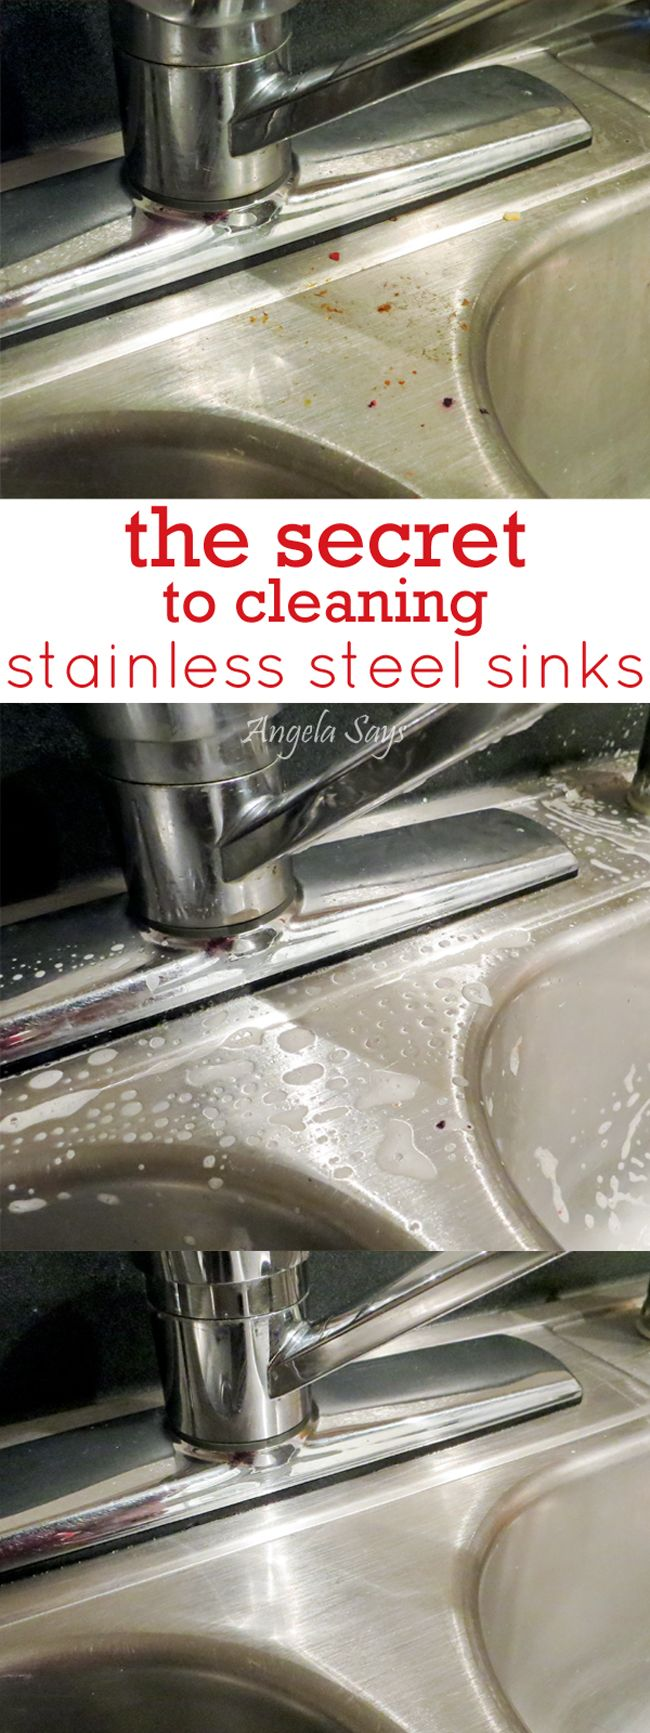 The secret to getting your stainless steel sinks and appliances super shiny